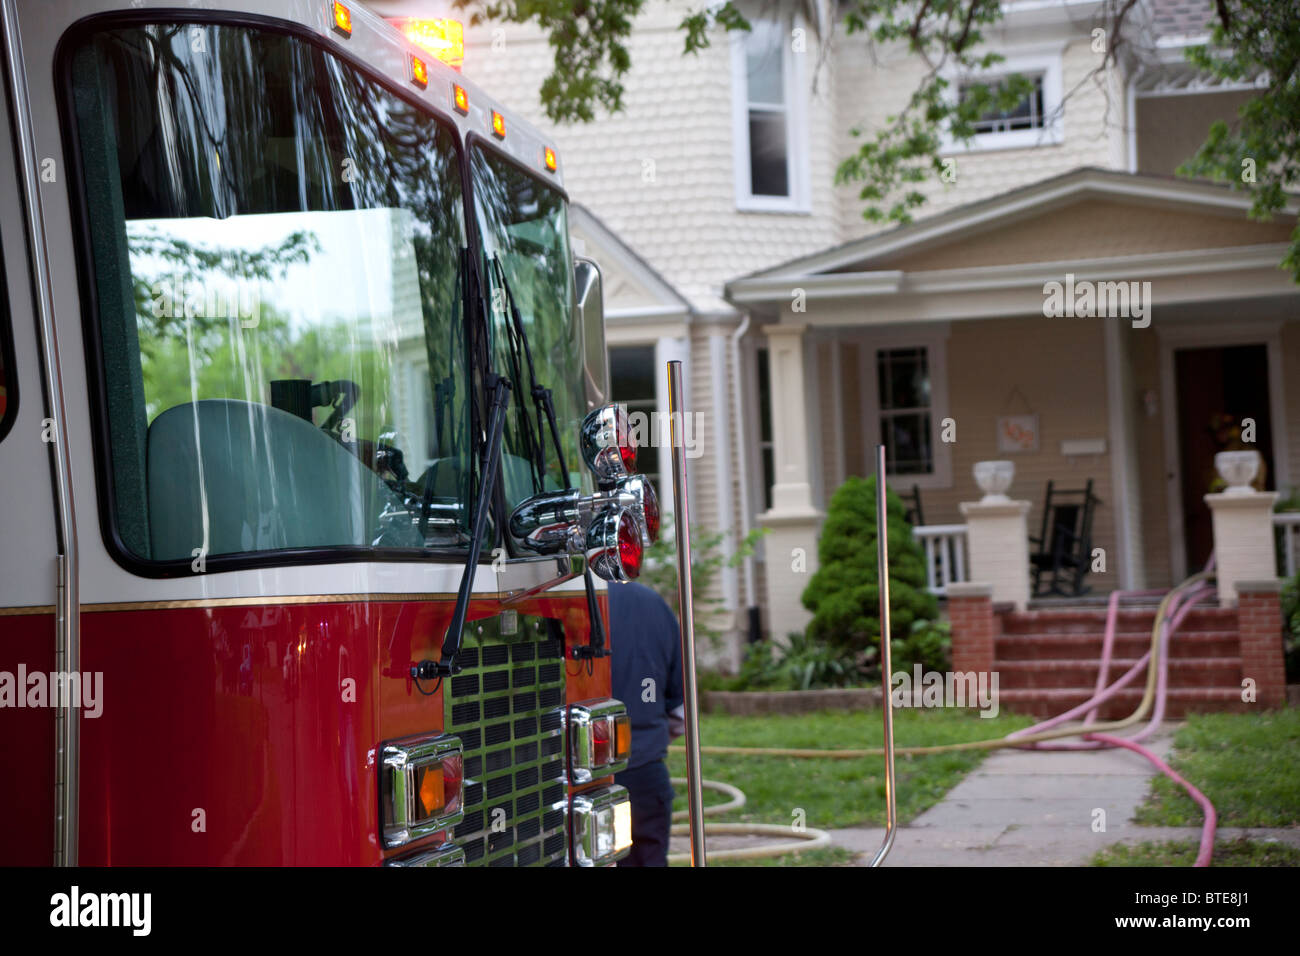 Close-up of a shiny red fire engine in front of a house with hoses. - Stock Image